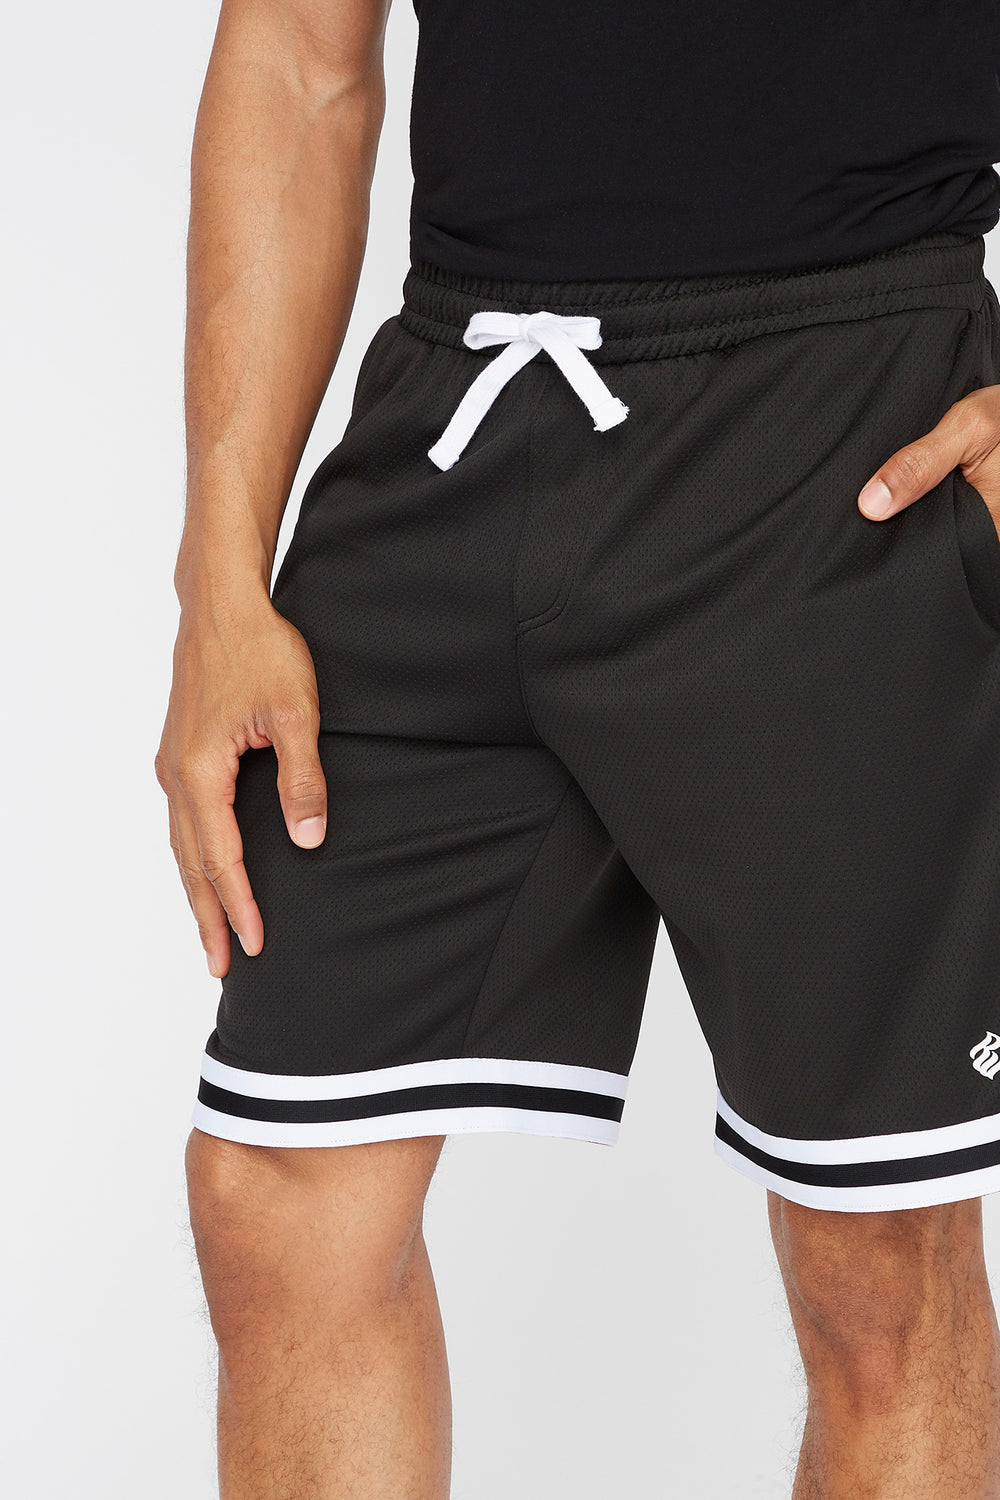 Rocawear Basketball Short Black